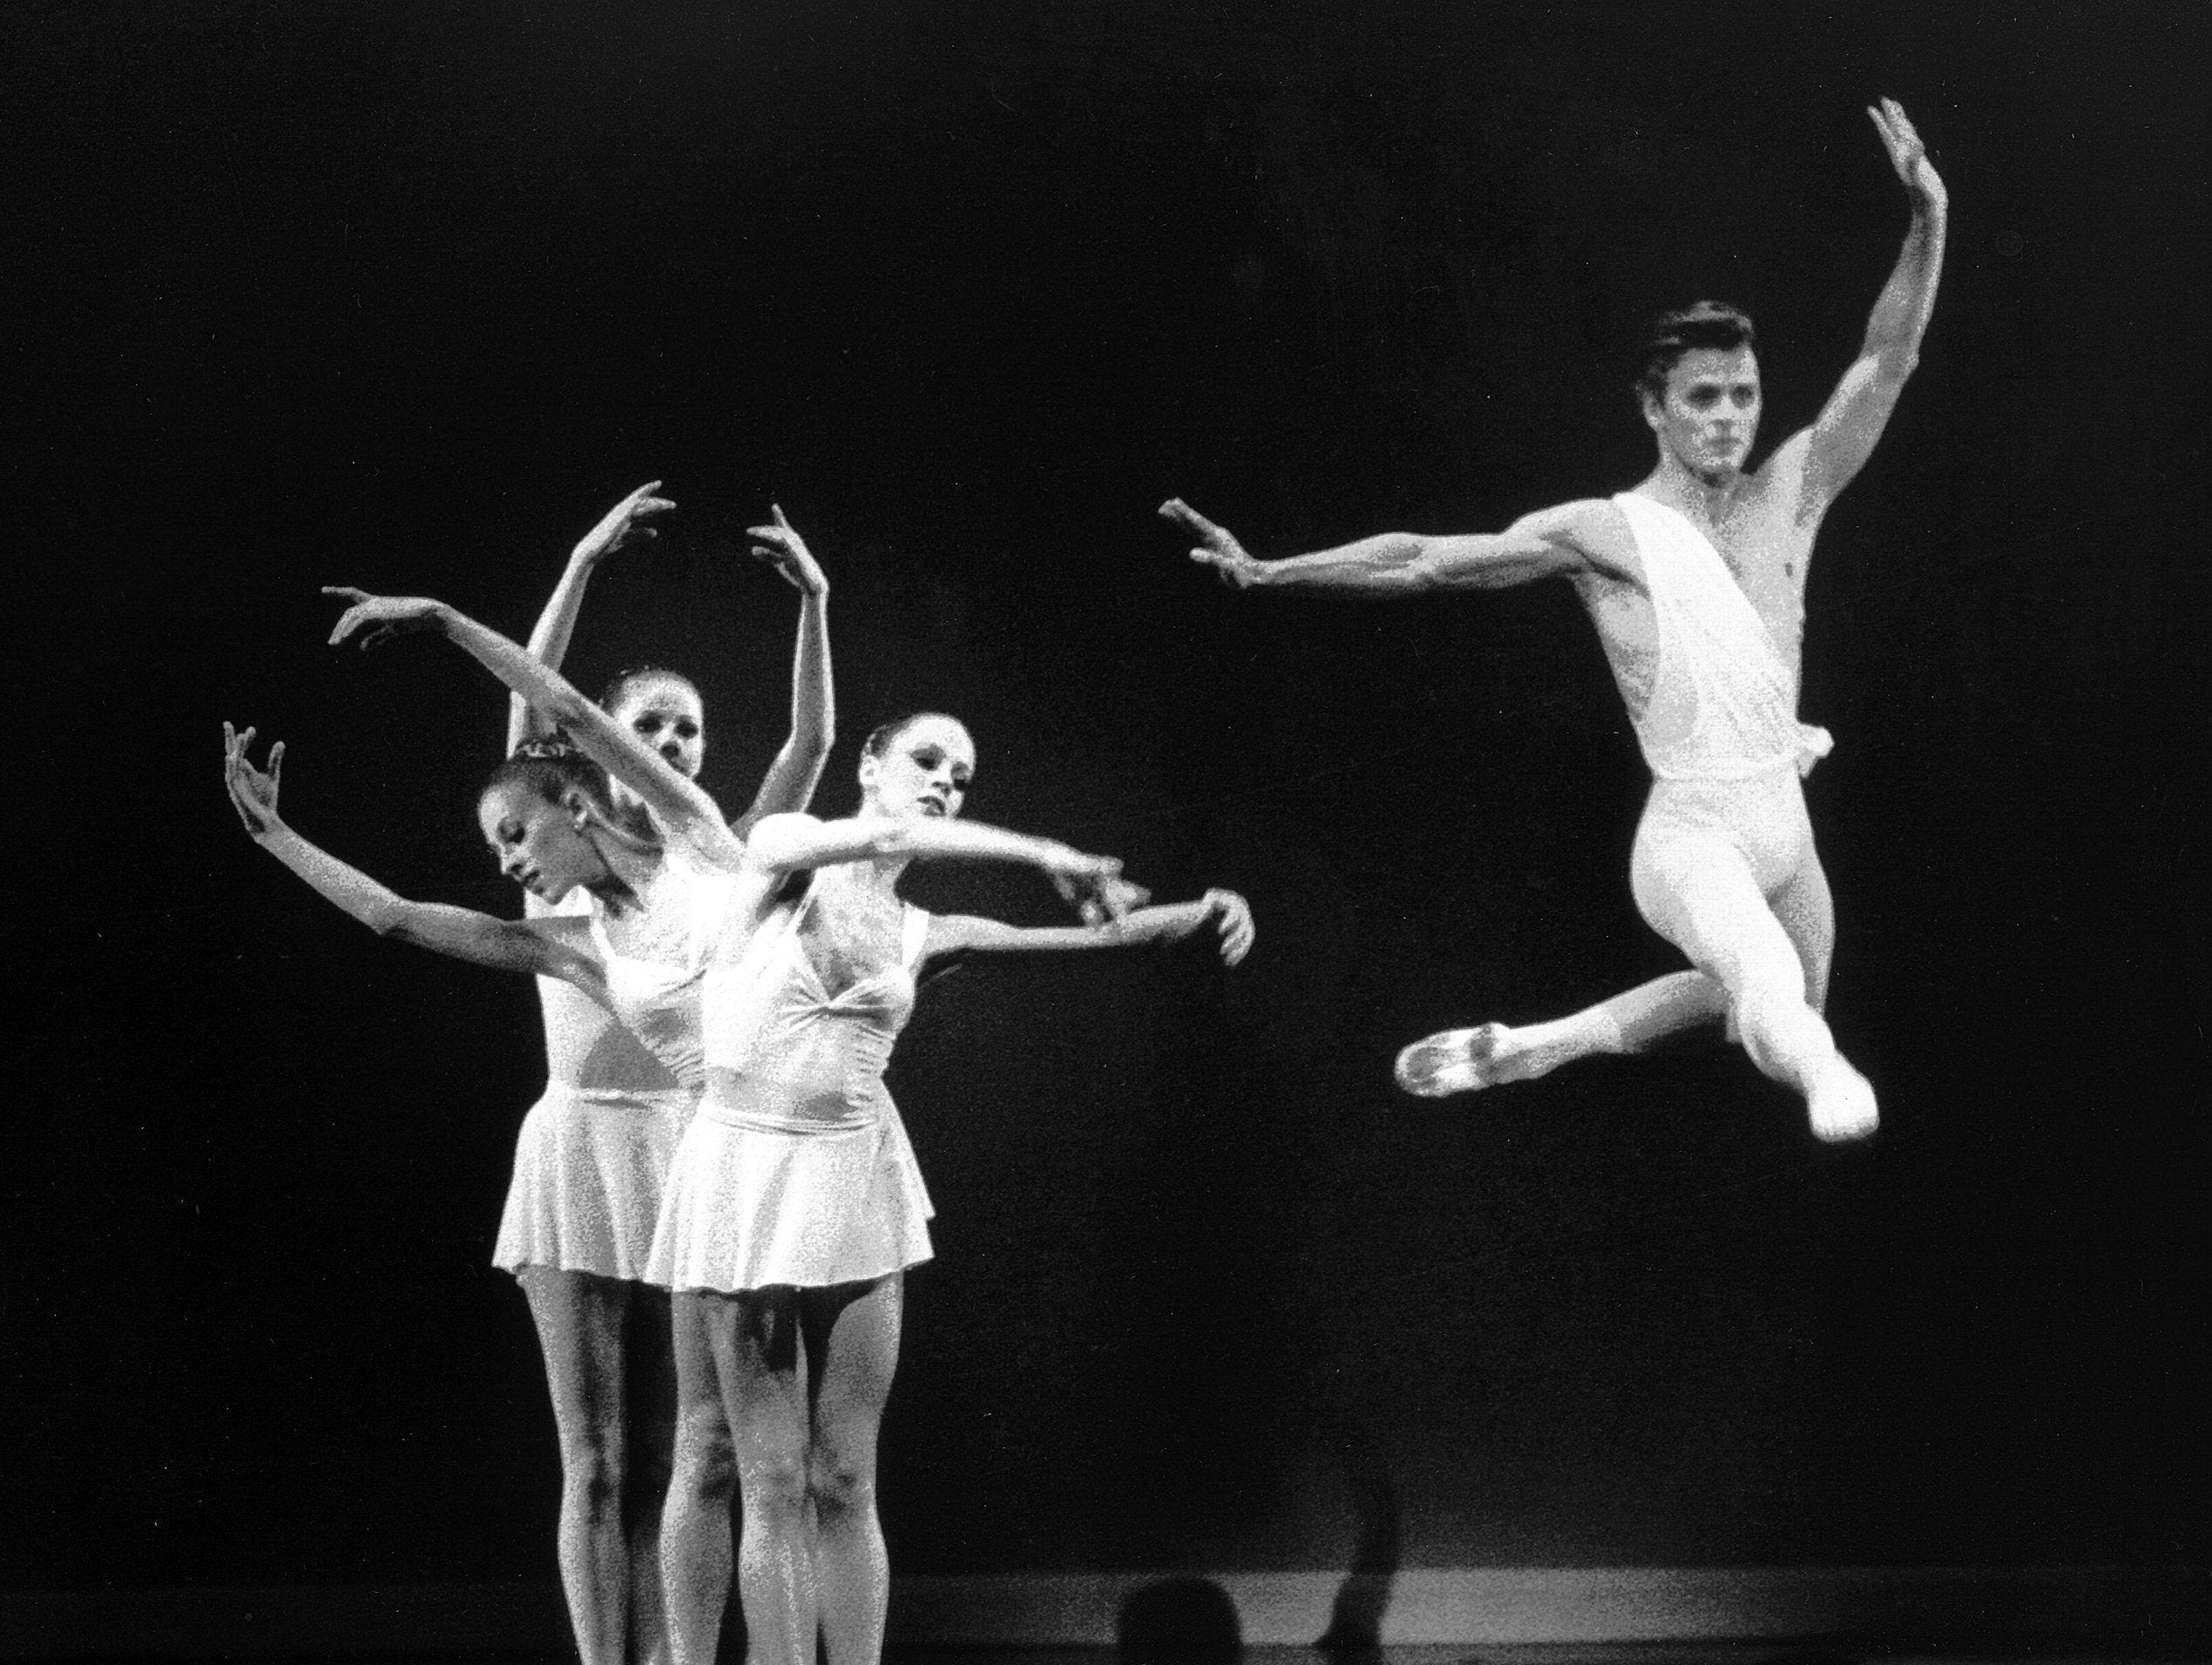 Mikhail Baryshnikov takes to the air in Ballet Company's Apollo with Heather Watts, Kyra Nichols and Judith Fugate on 30 Oct 1979.  The benefit performance at The Auditorium's Dixon-Myers Hall played to virtually a full house at the 4,361 seat venue.